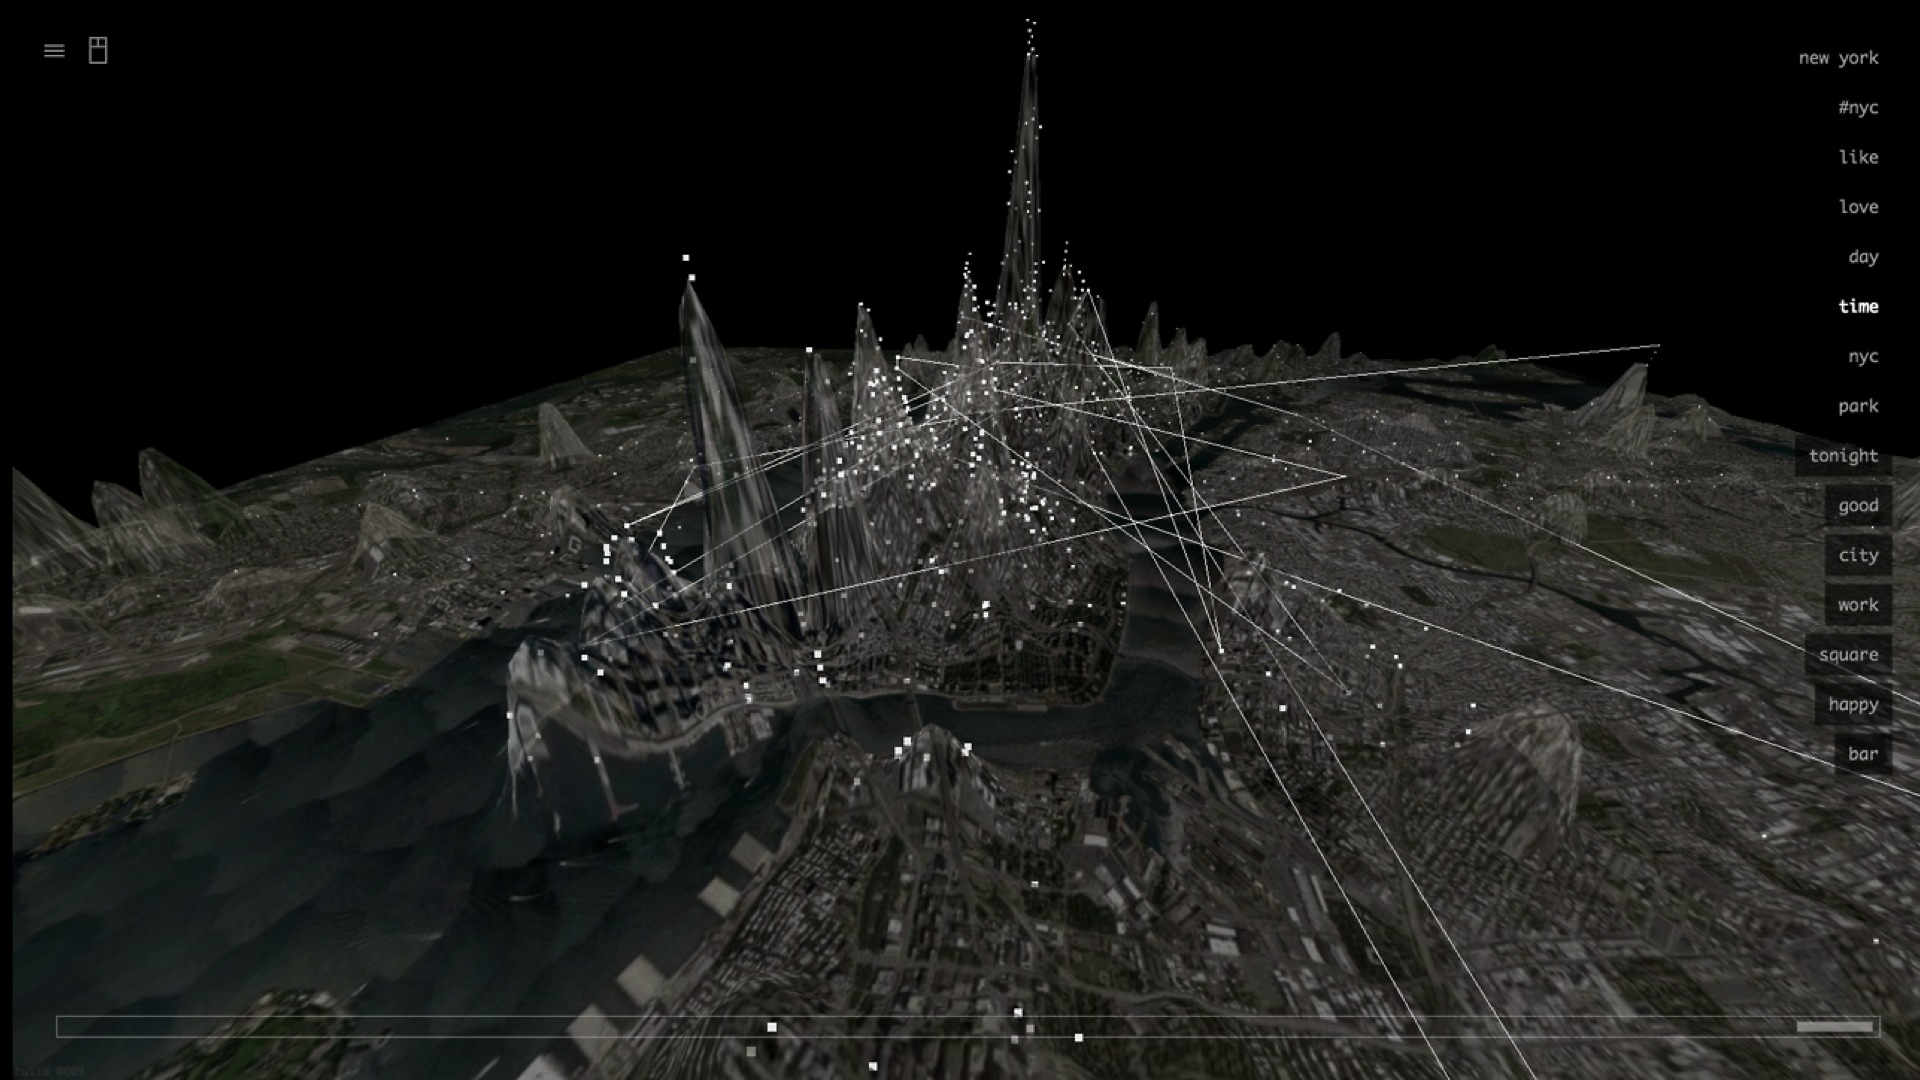 Invisible cities, by Christian Marc Schmidt and Liangjie Xia